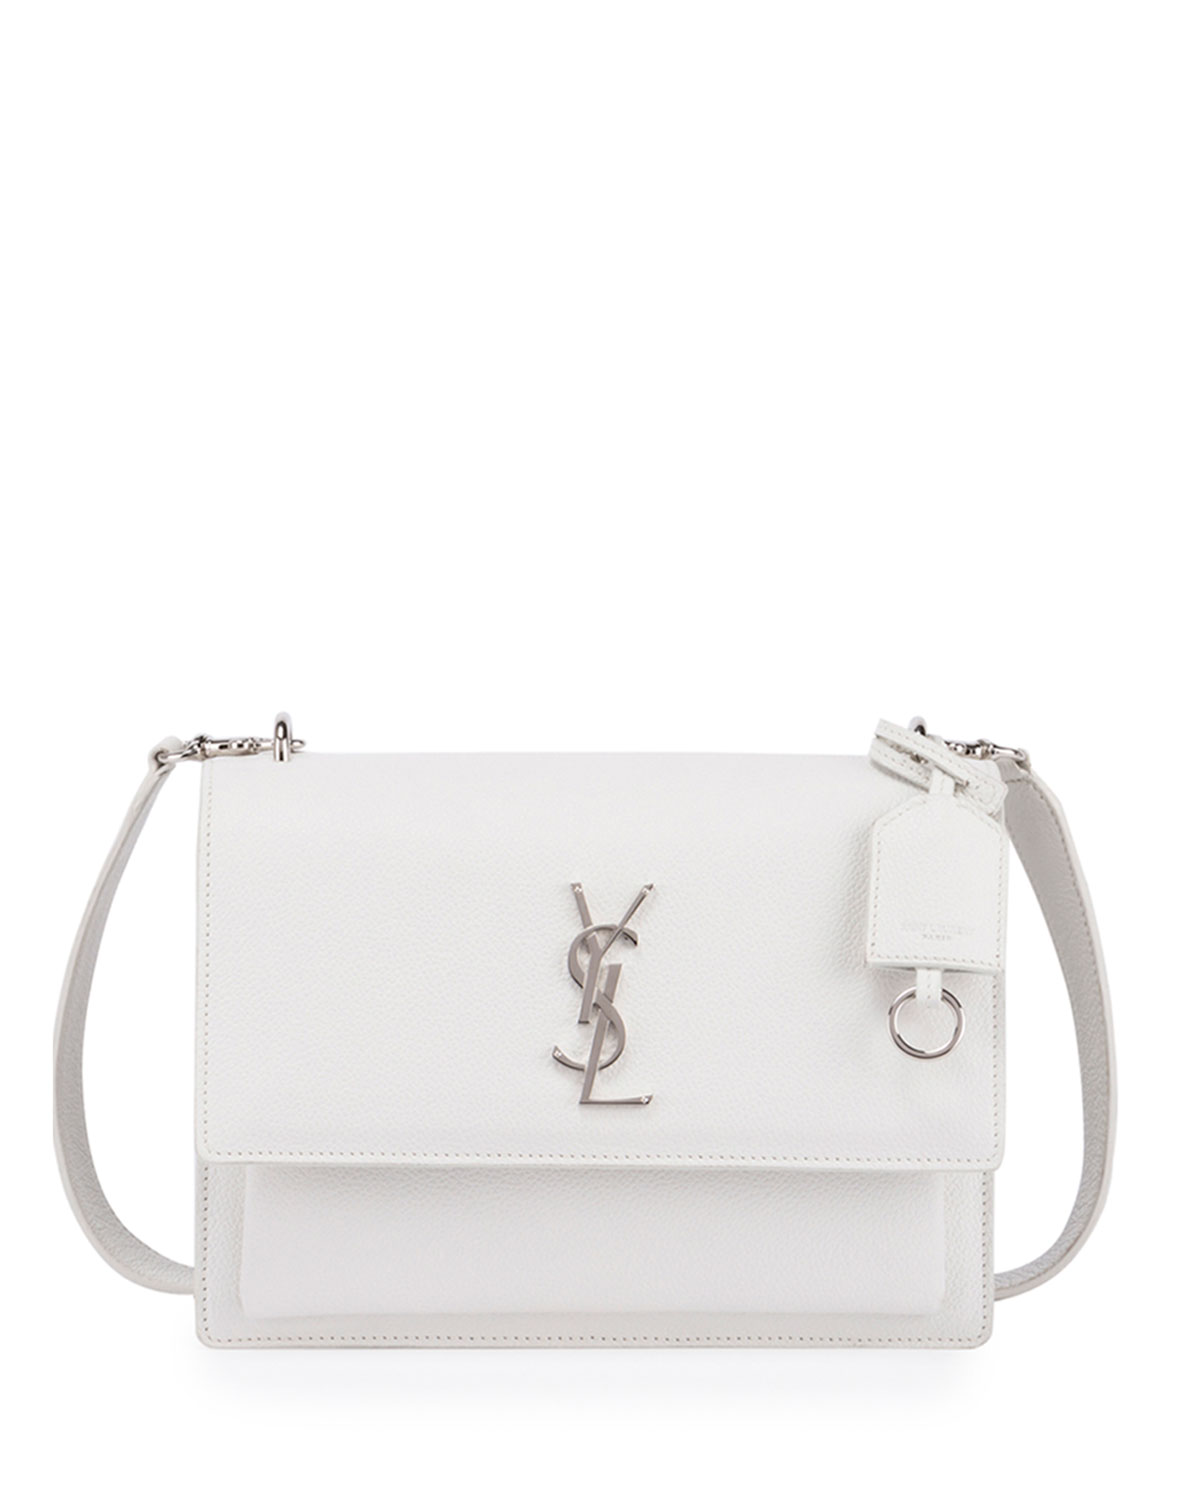 Sunset Medium Crossbody Bag White